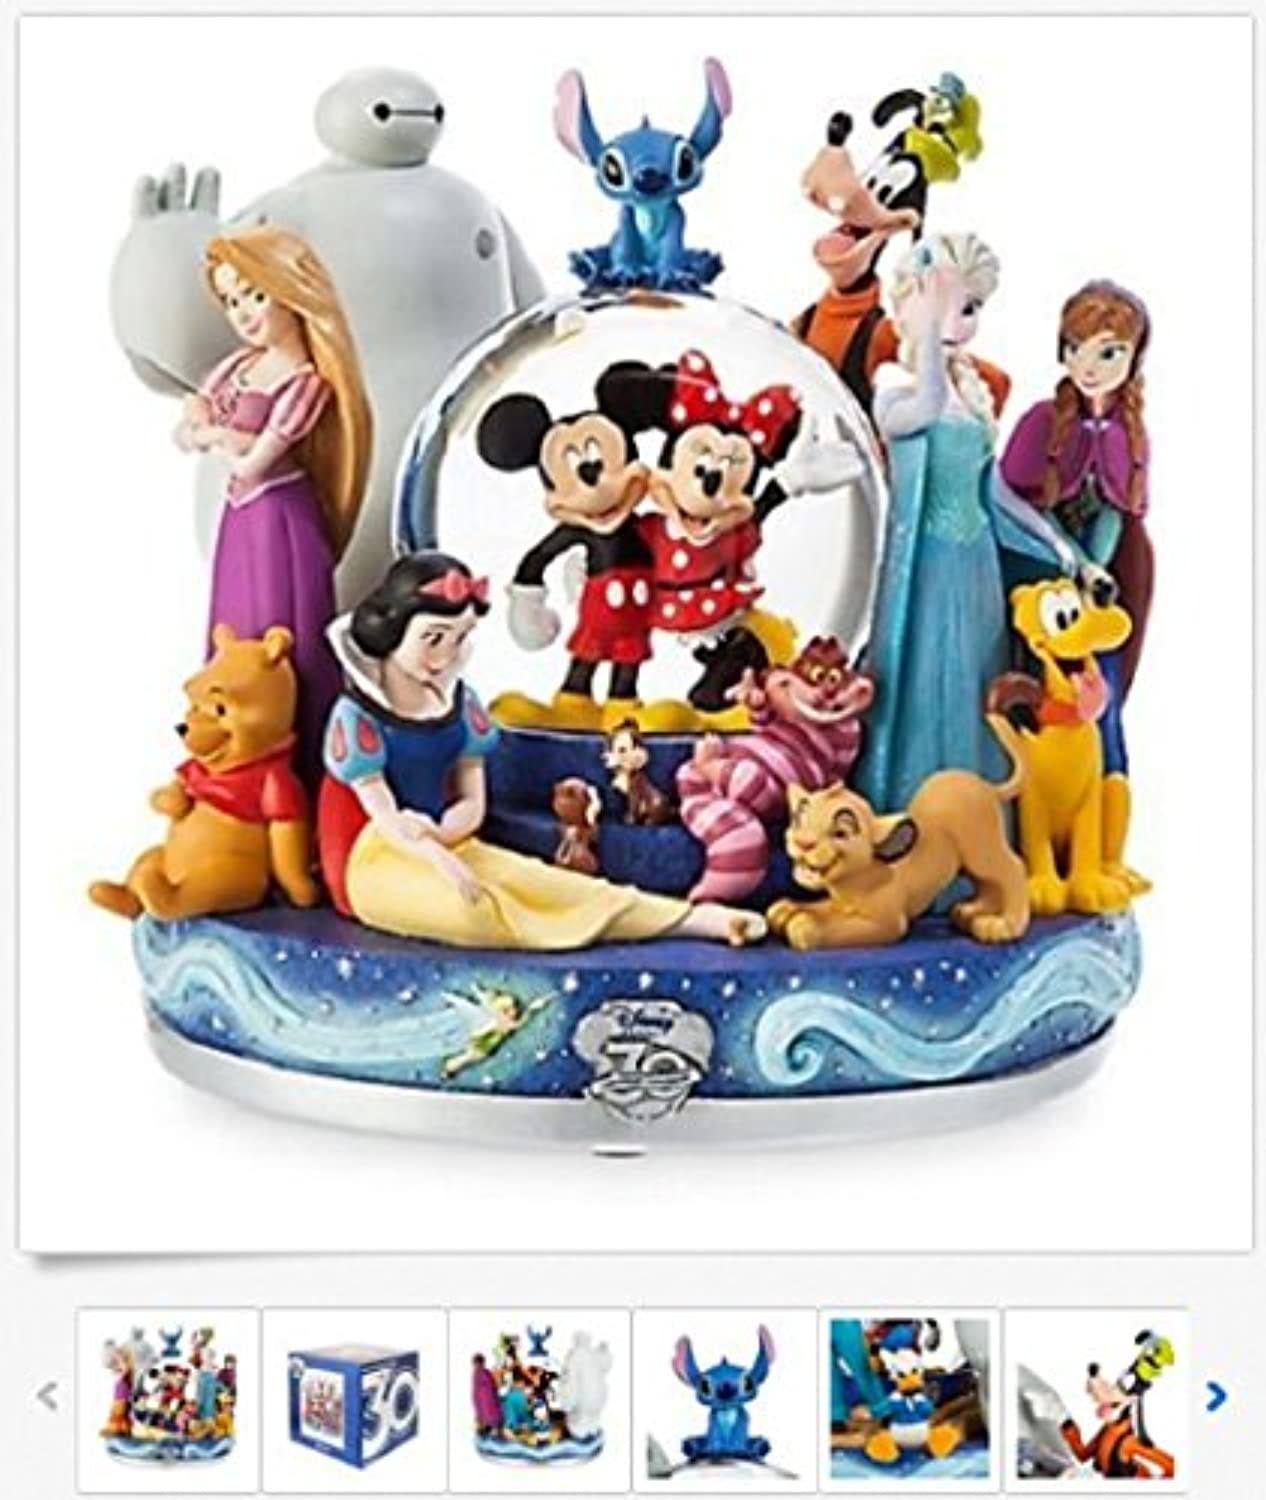 30th Anniversary Snowglobe Limited